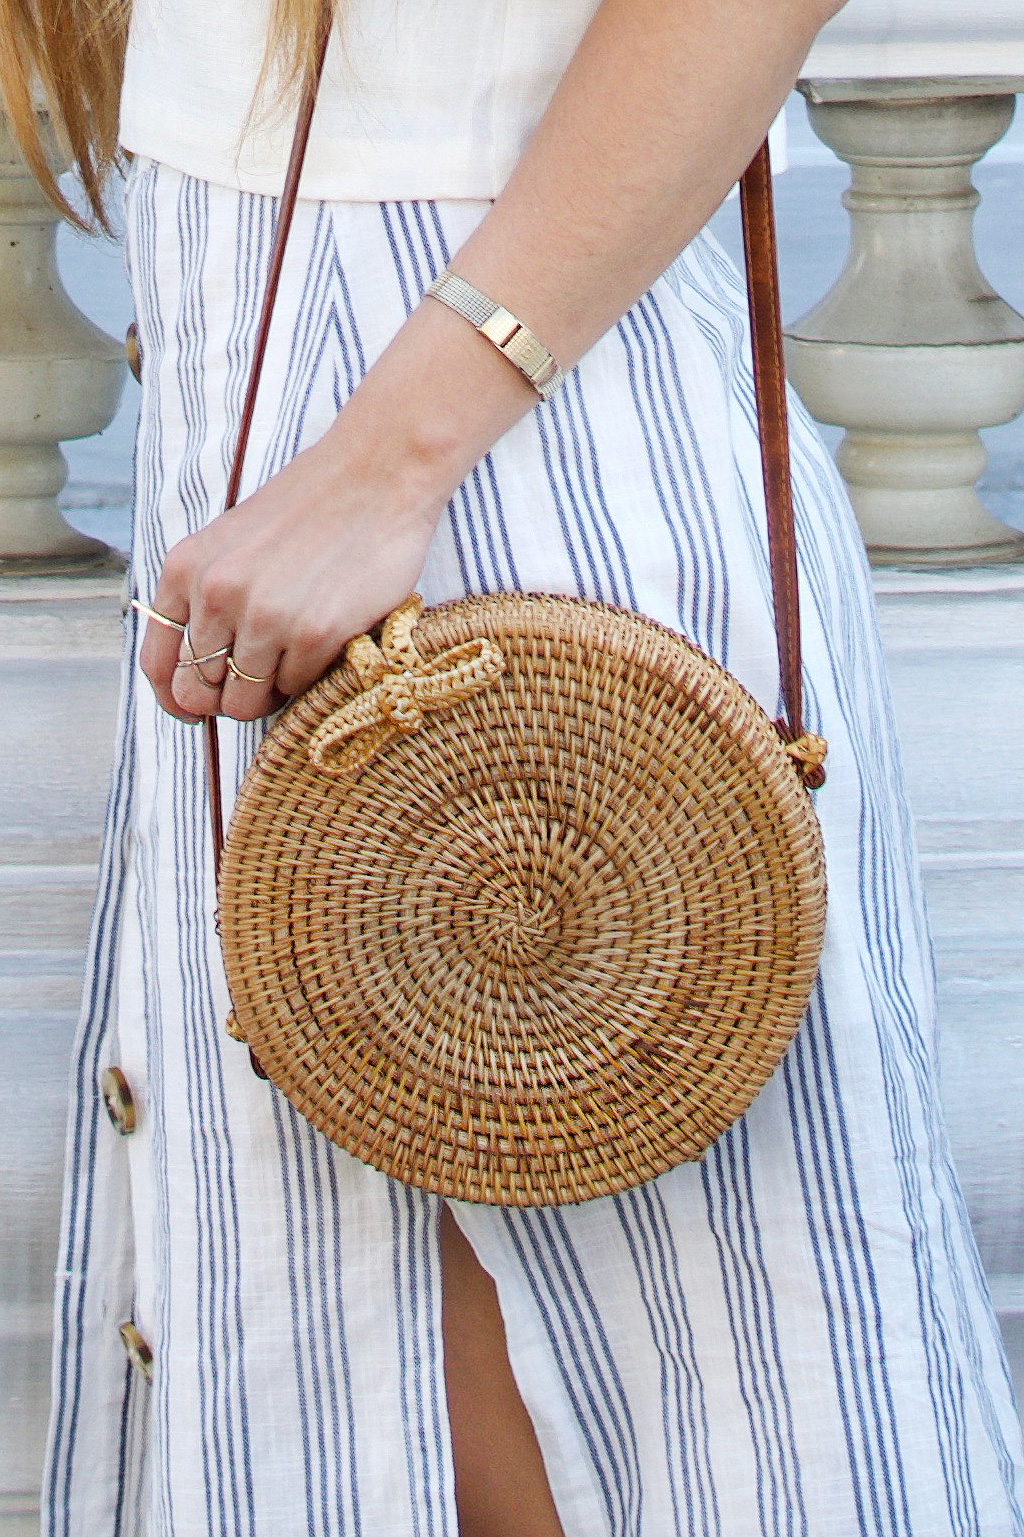 A gorgeous rattan bag from Wish. It's such a perfect travel bag for tropical climates.